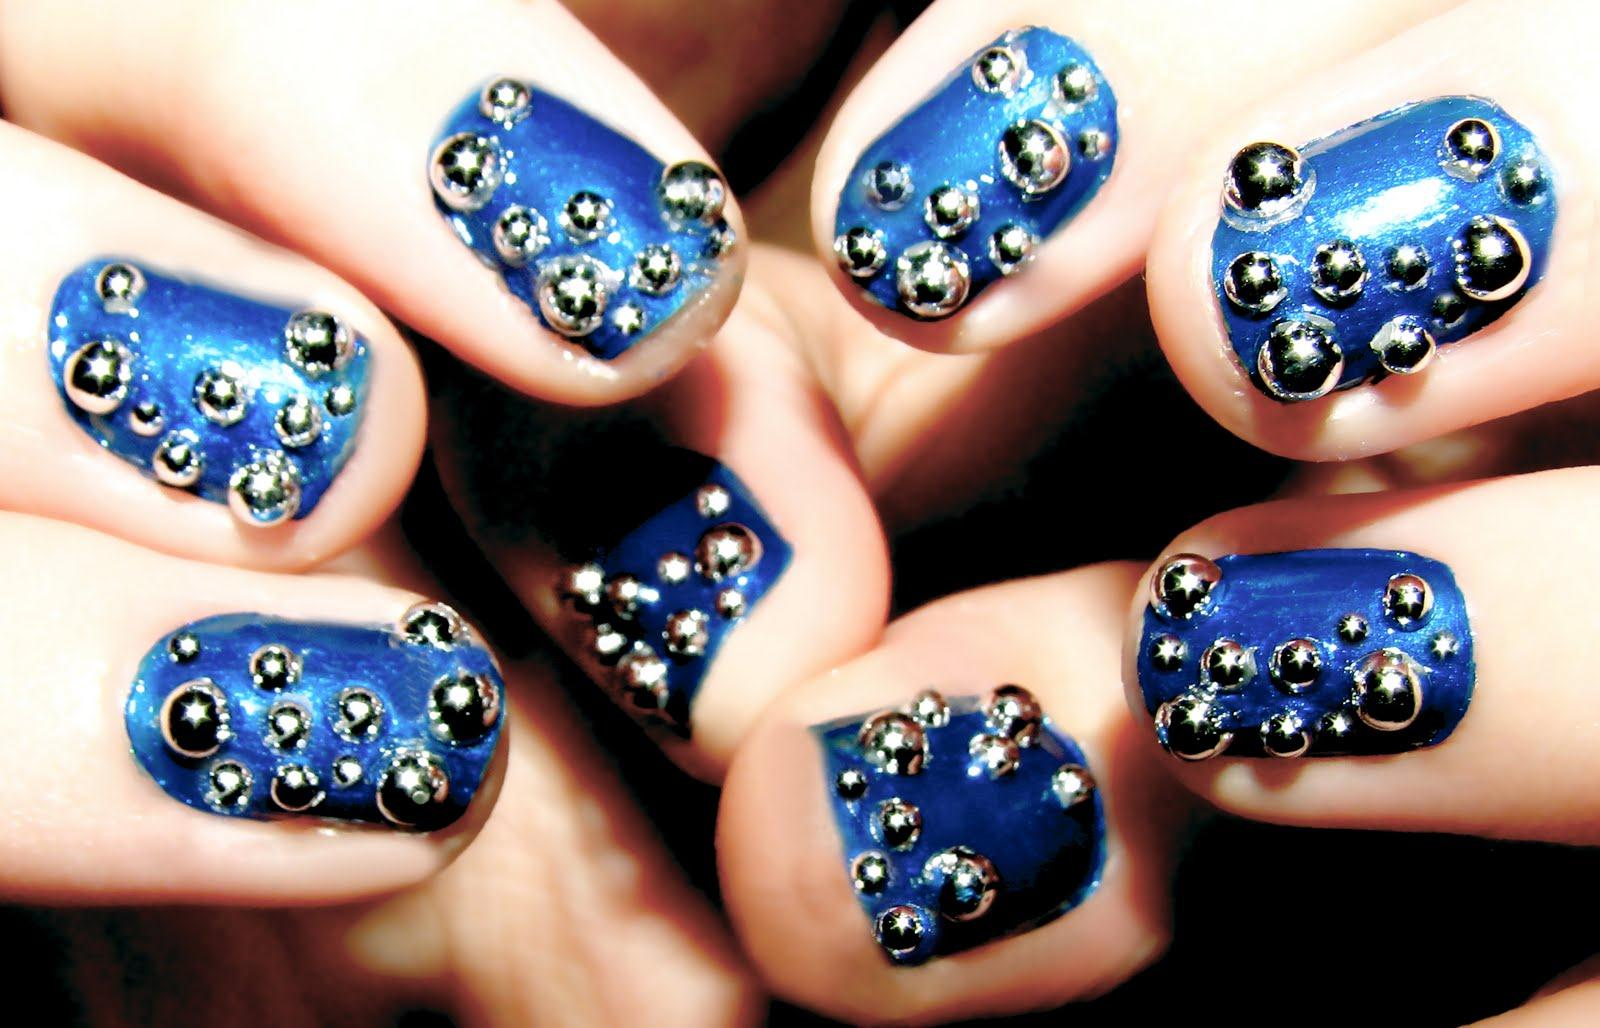 Awesome nail art 2013 for girls fashionstylecry bridal dresses posts related to awesome nail art 2013 for girls prinsesfo Image collections